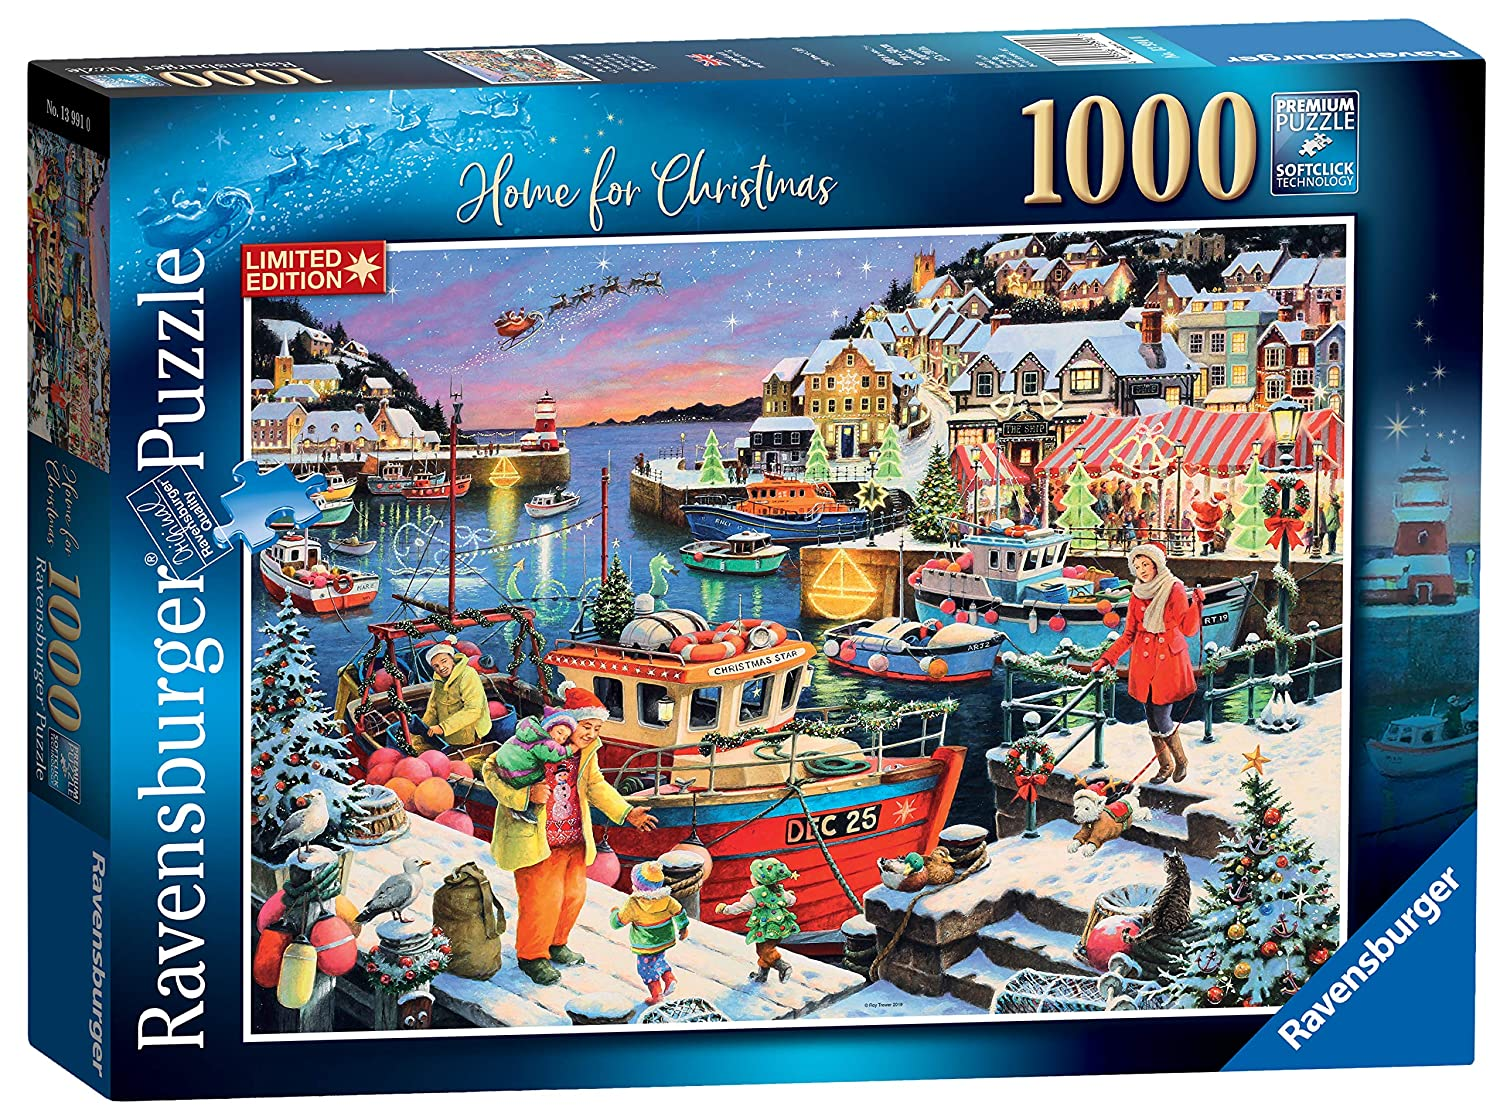 Coming Home For Christmas 2019.Ravensburger 13991 Home For Christmas Limited Edition 2019 1000pc Jigsaw Puzzle